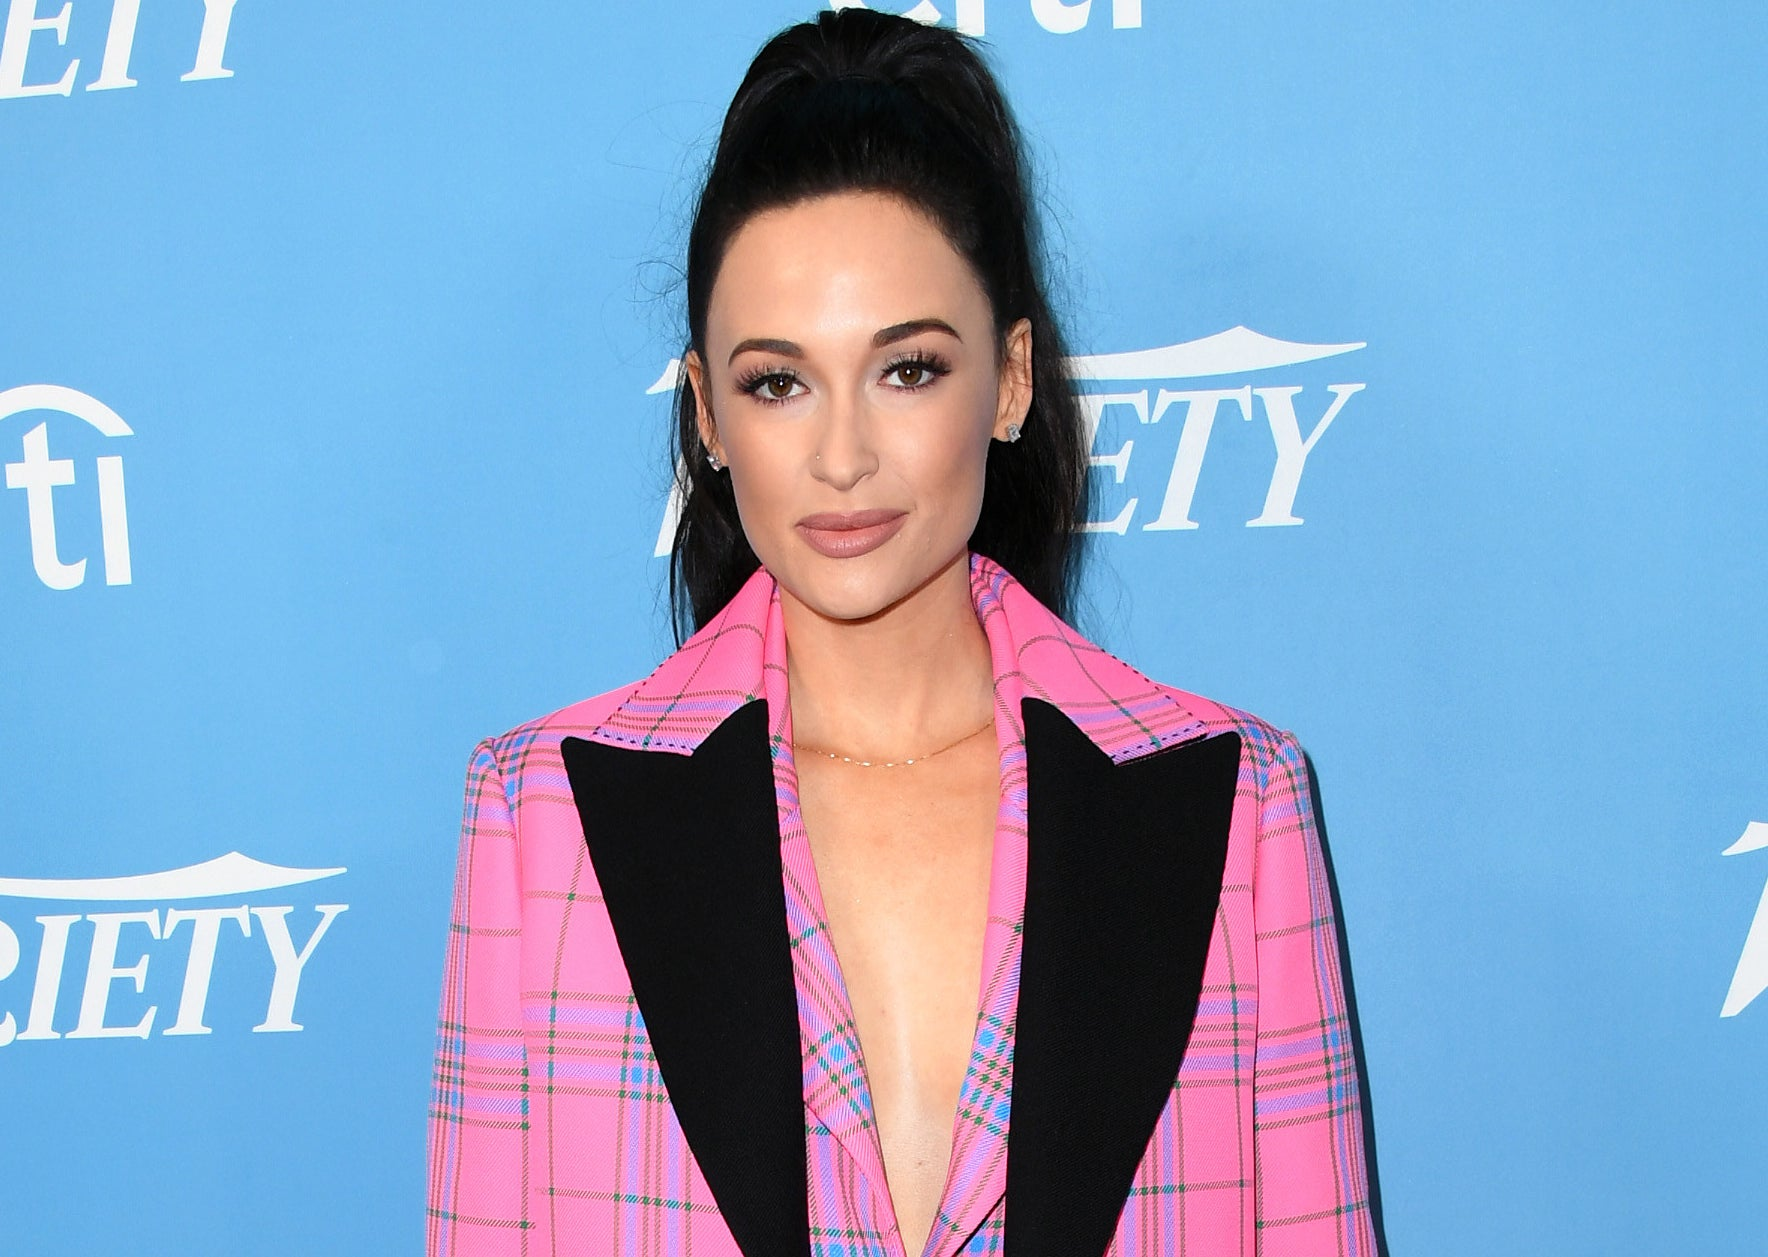 Kacey wears her hair up and pink plaid blazer